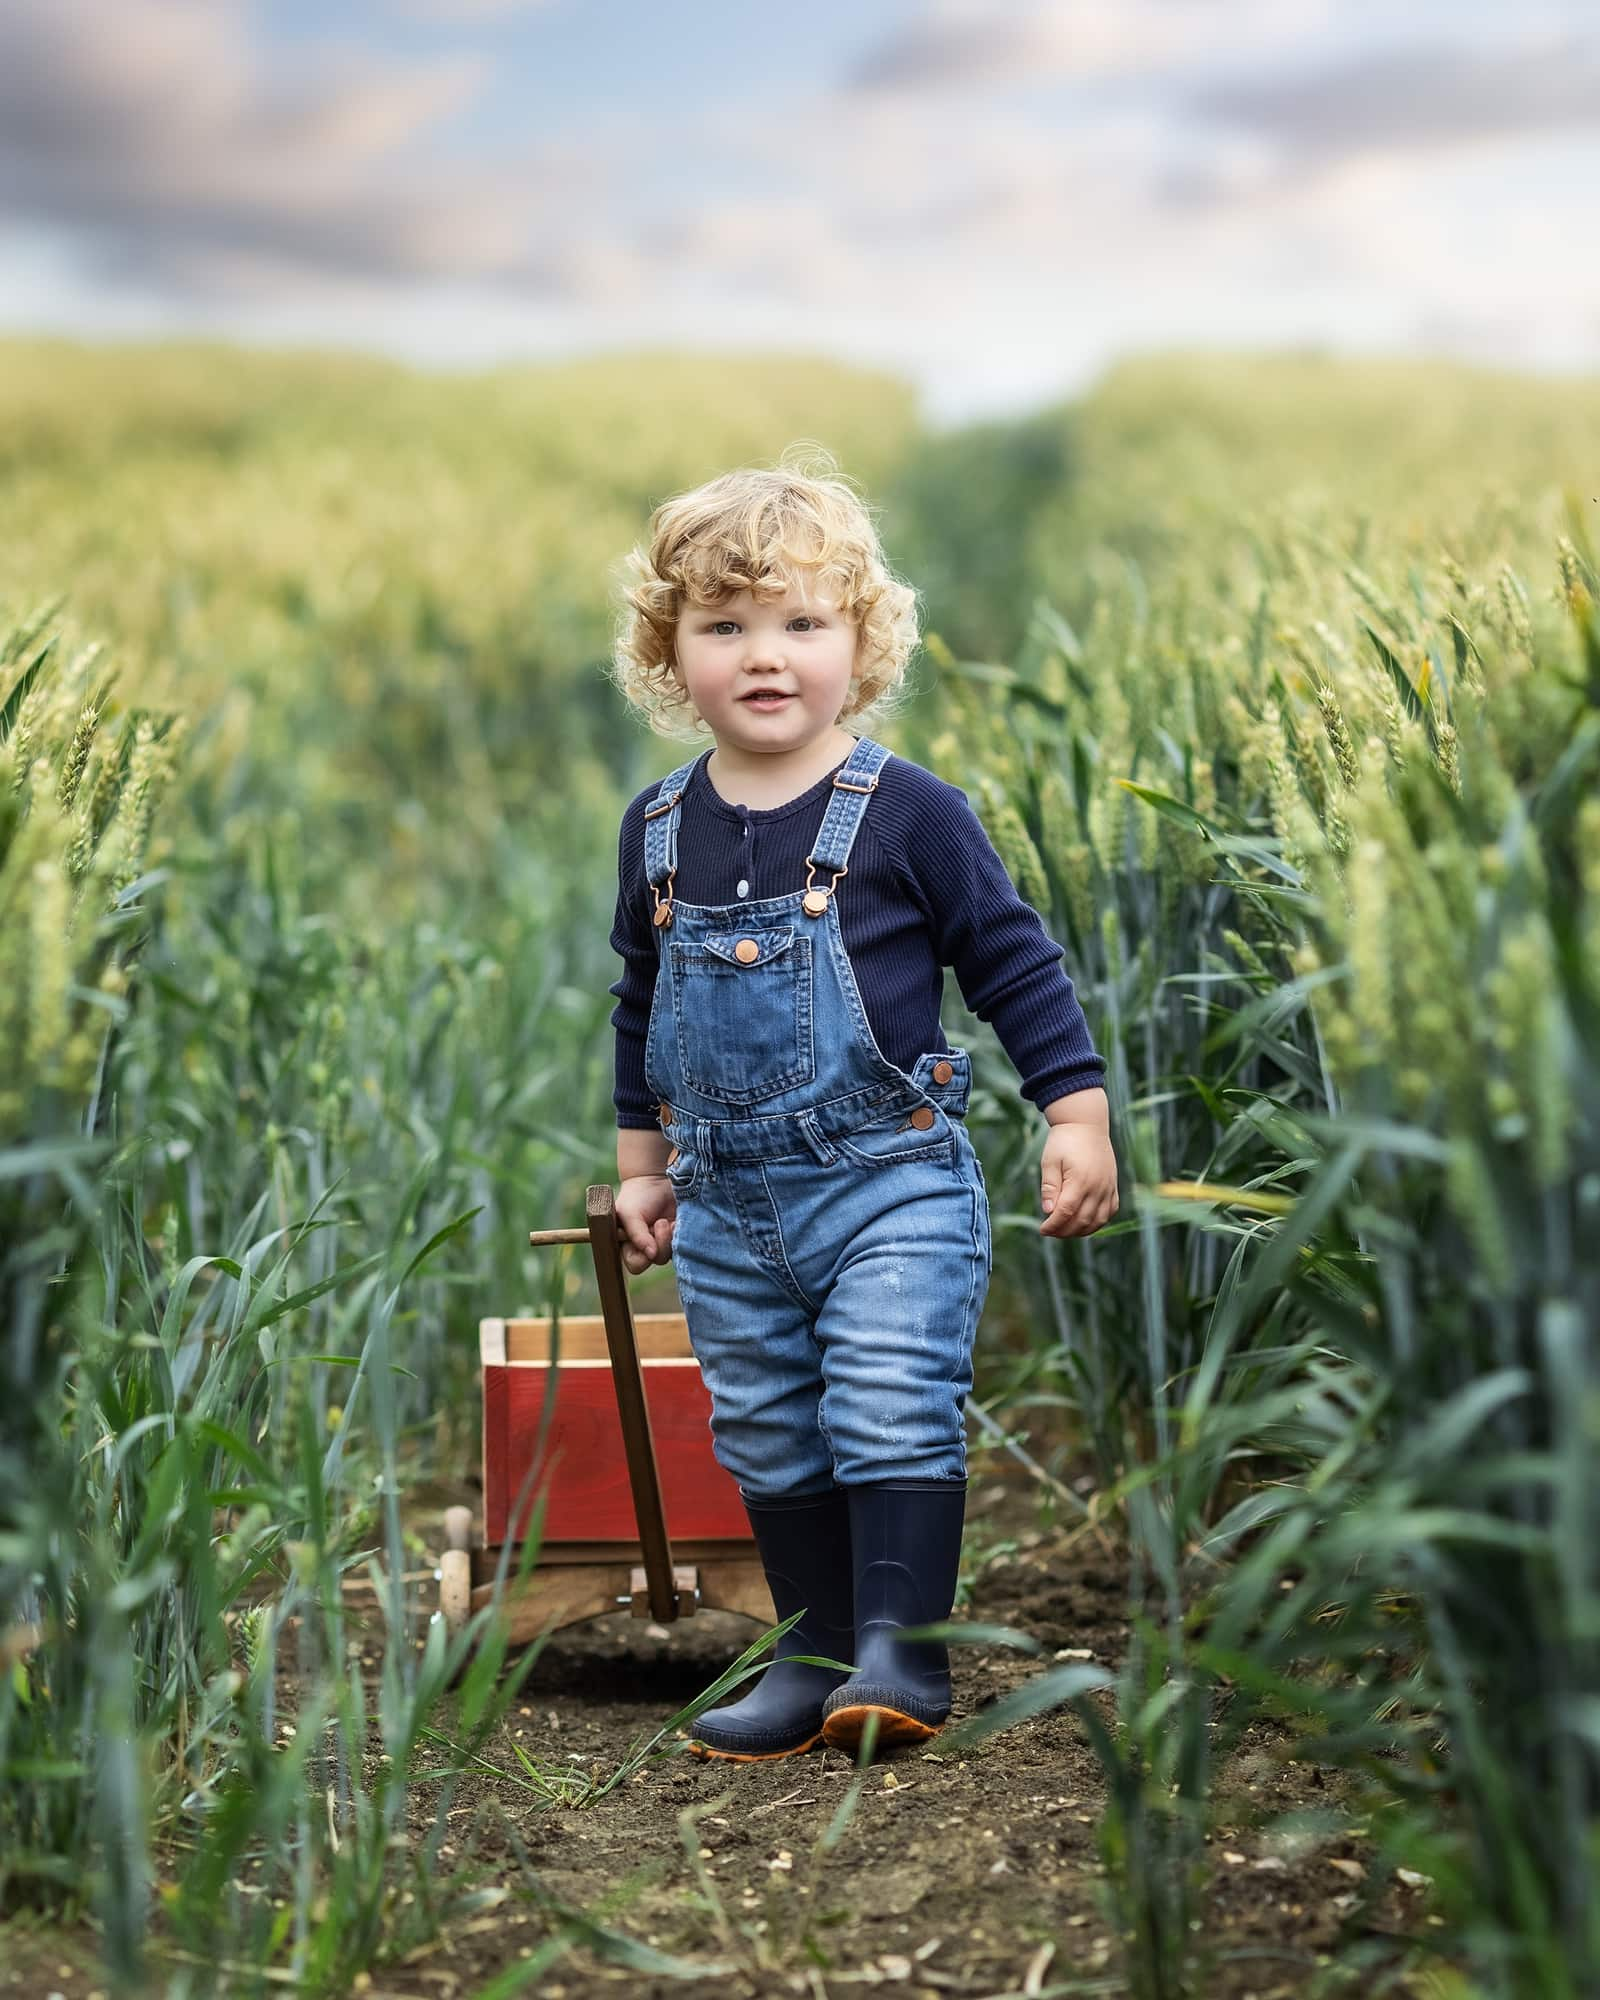 Toddler in dungarees pulls a red wagon during his Mini Photoshoot in a wheat field